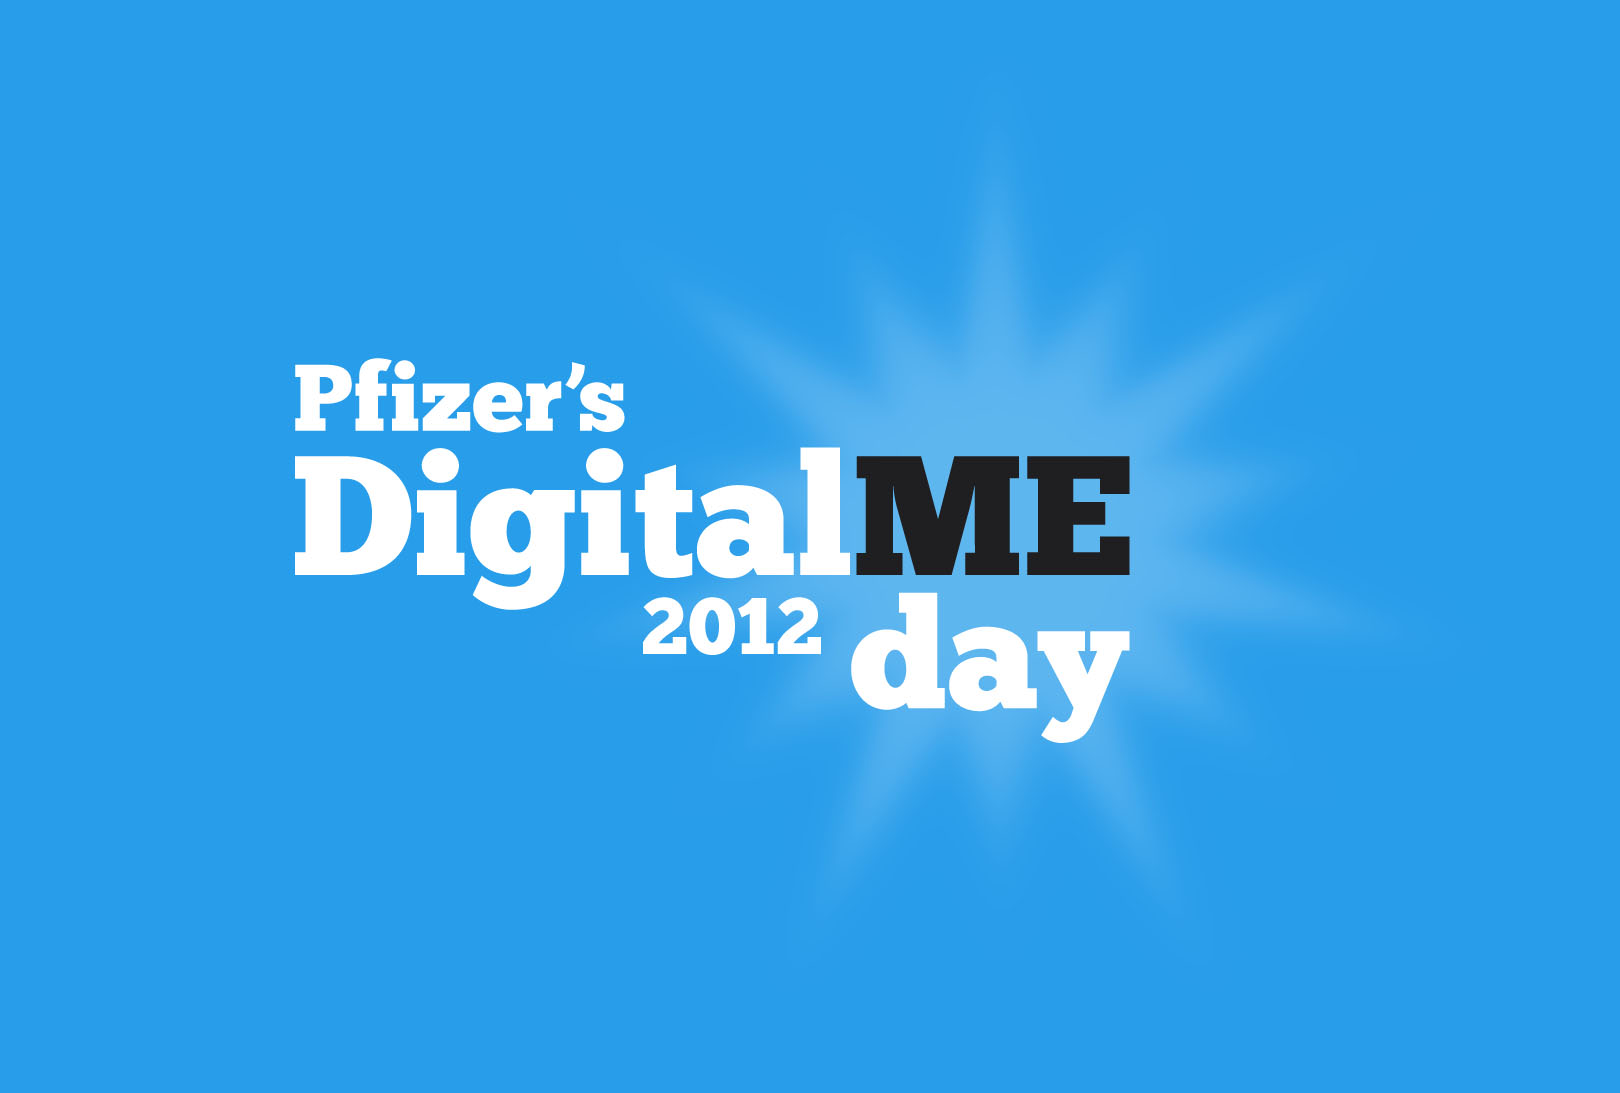 DigitalME day 2012